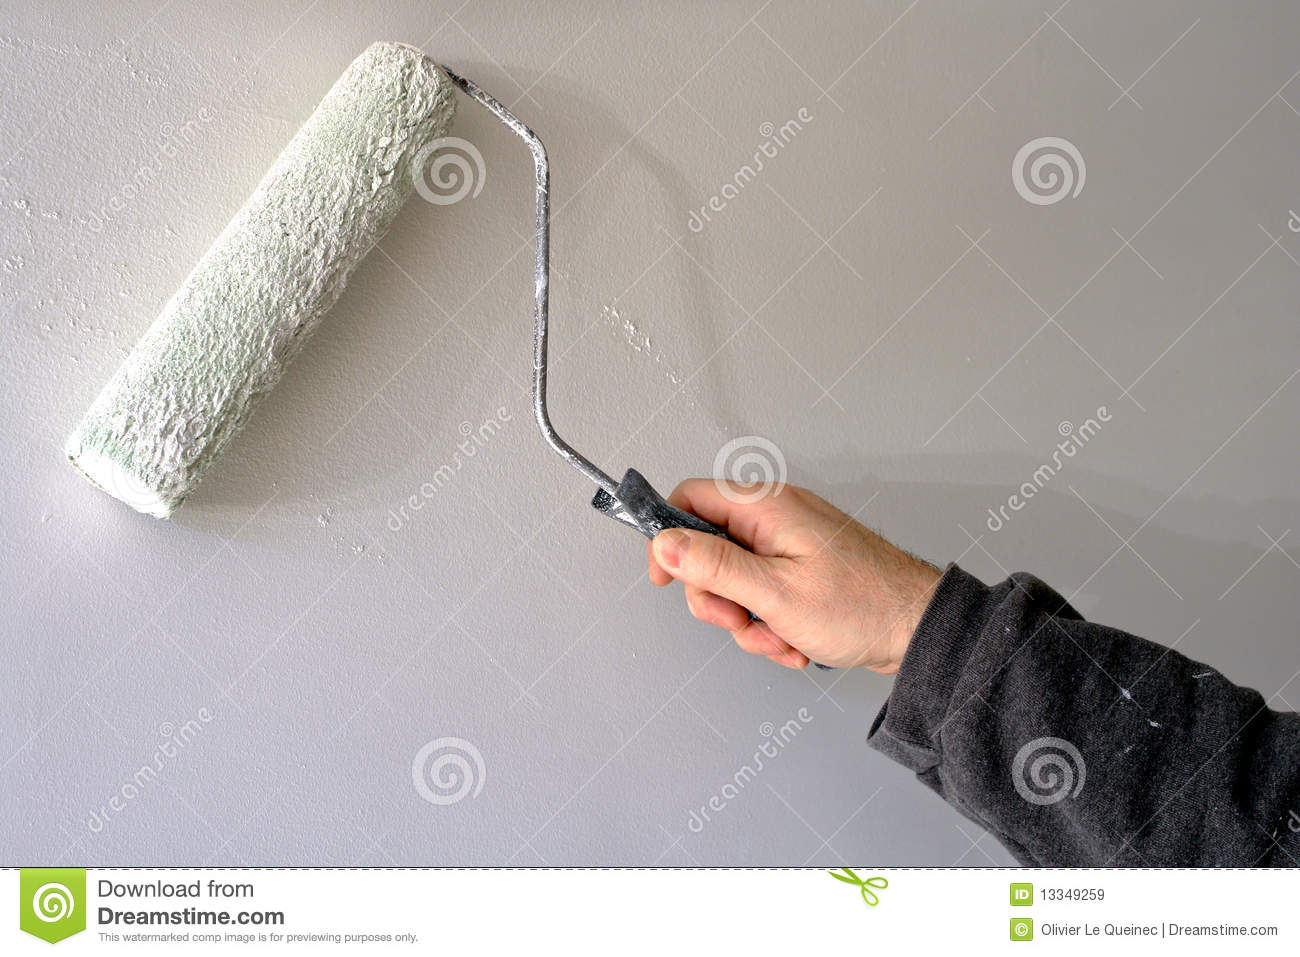 Painter Painting A House Wall With A Paint Roller Royalty Free Stock Images Image 13349259